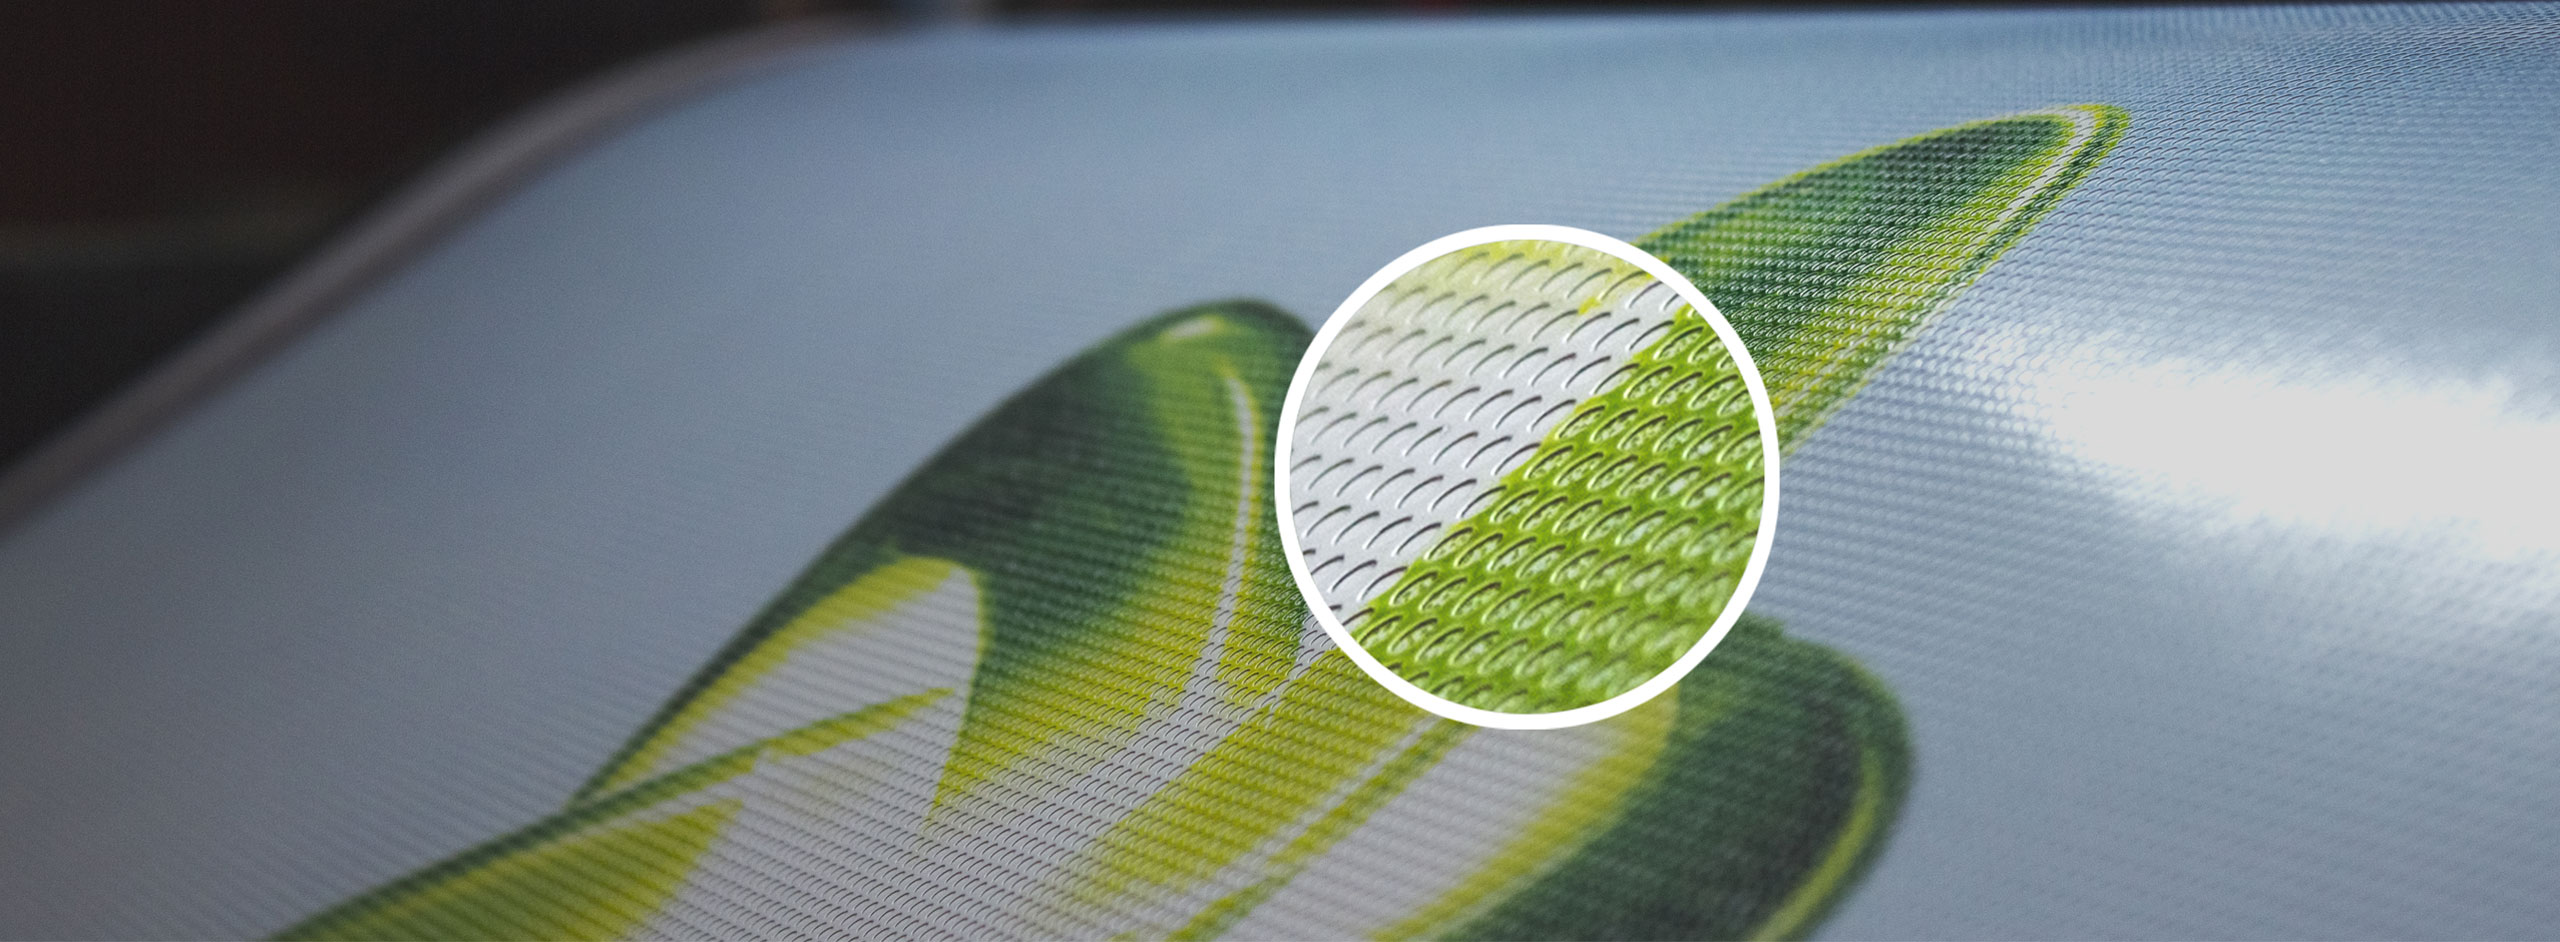 see thru perforated decals